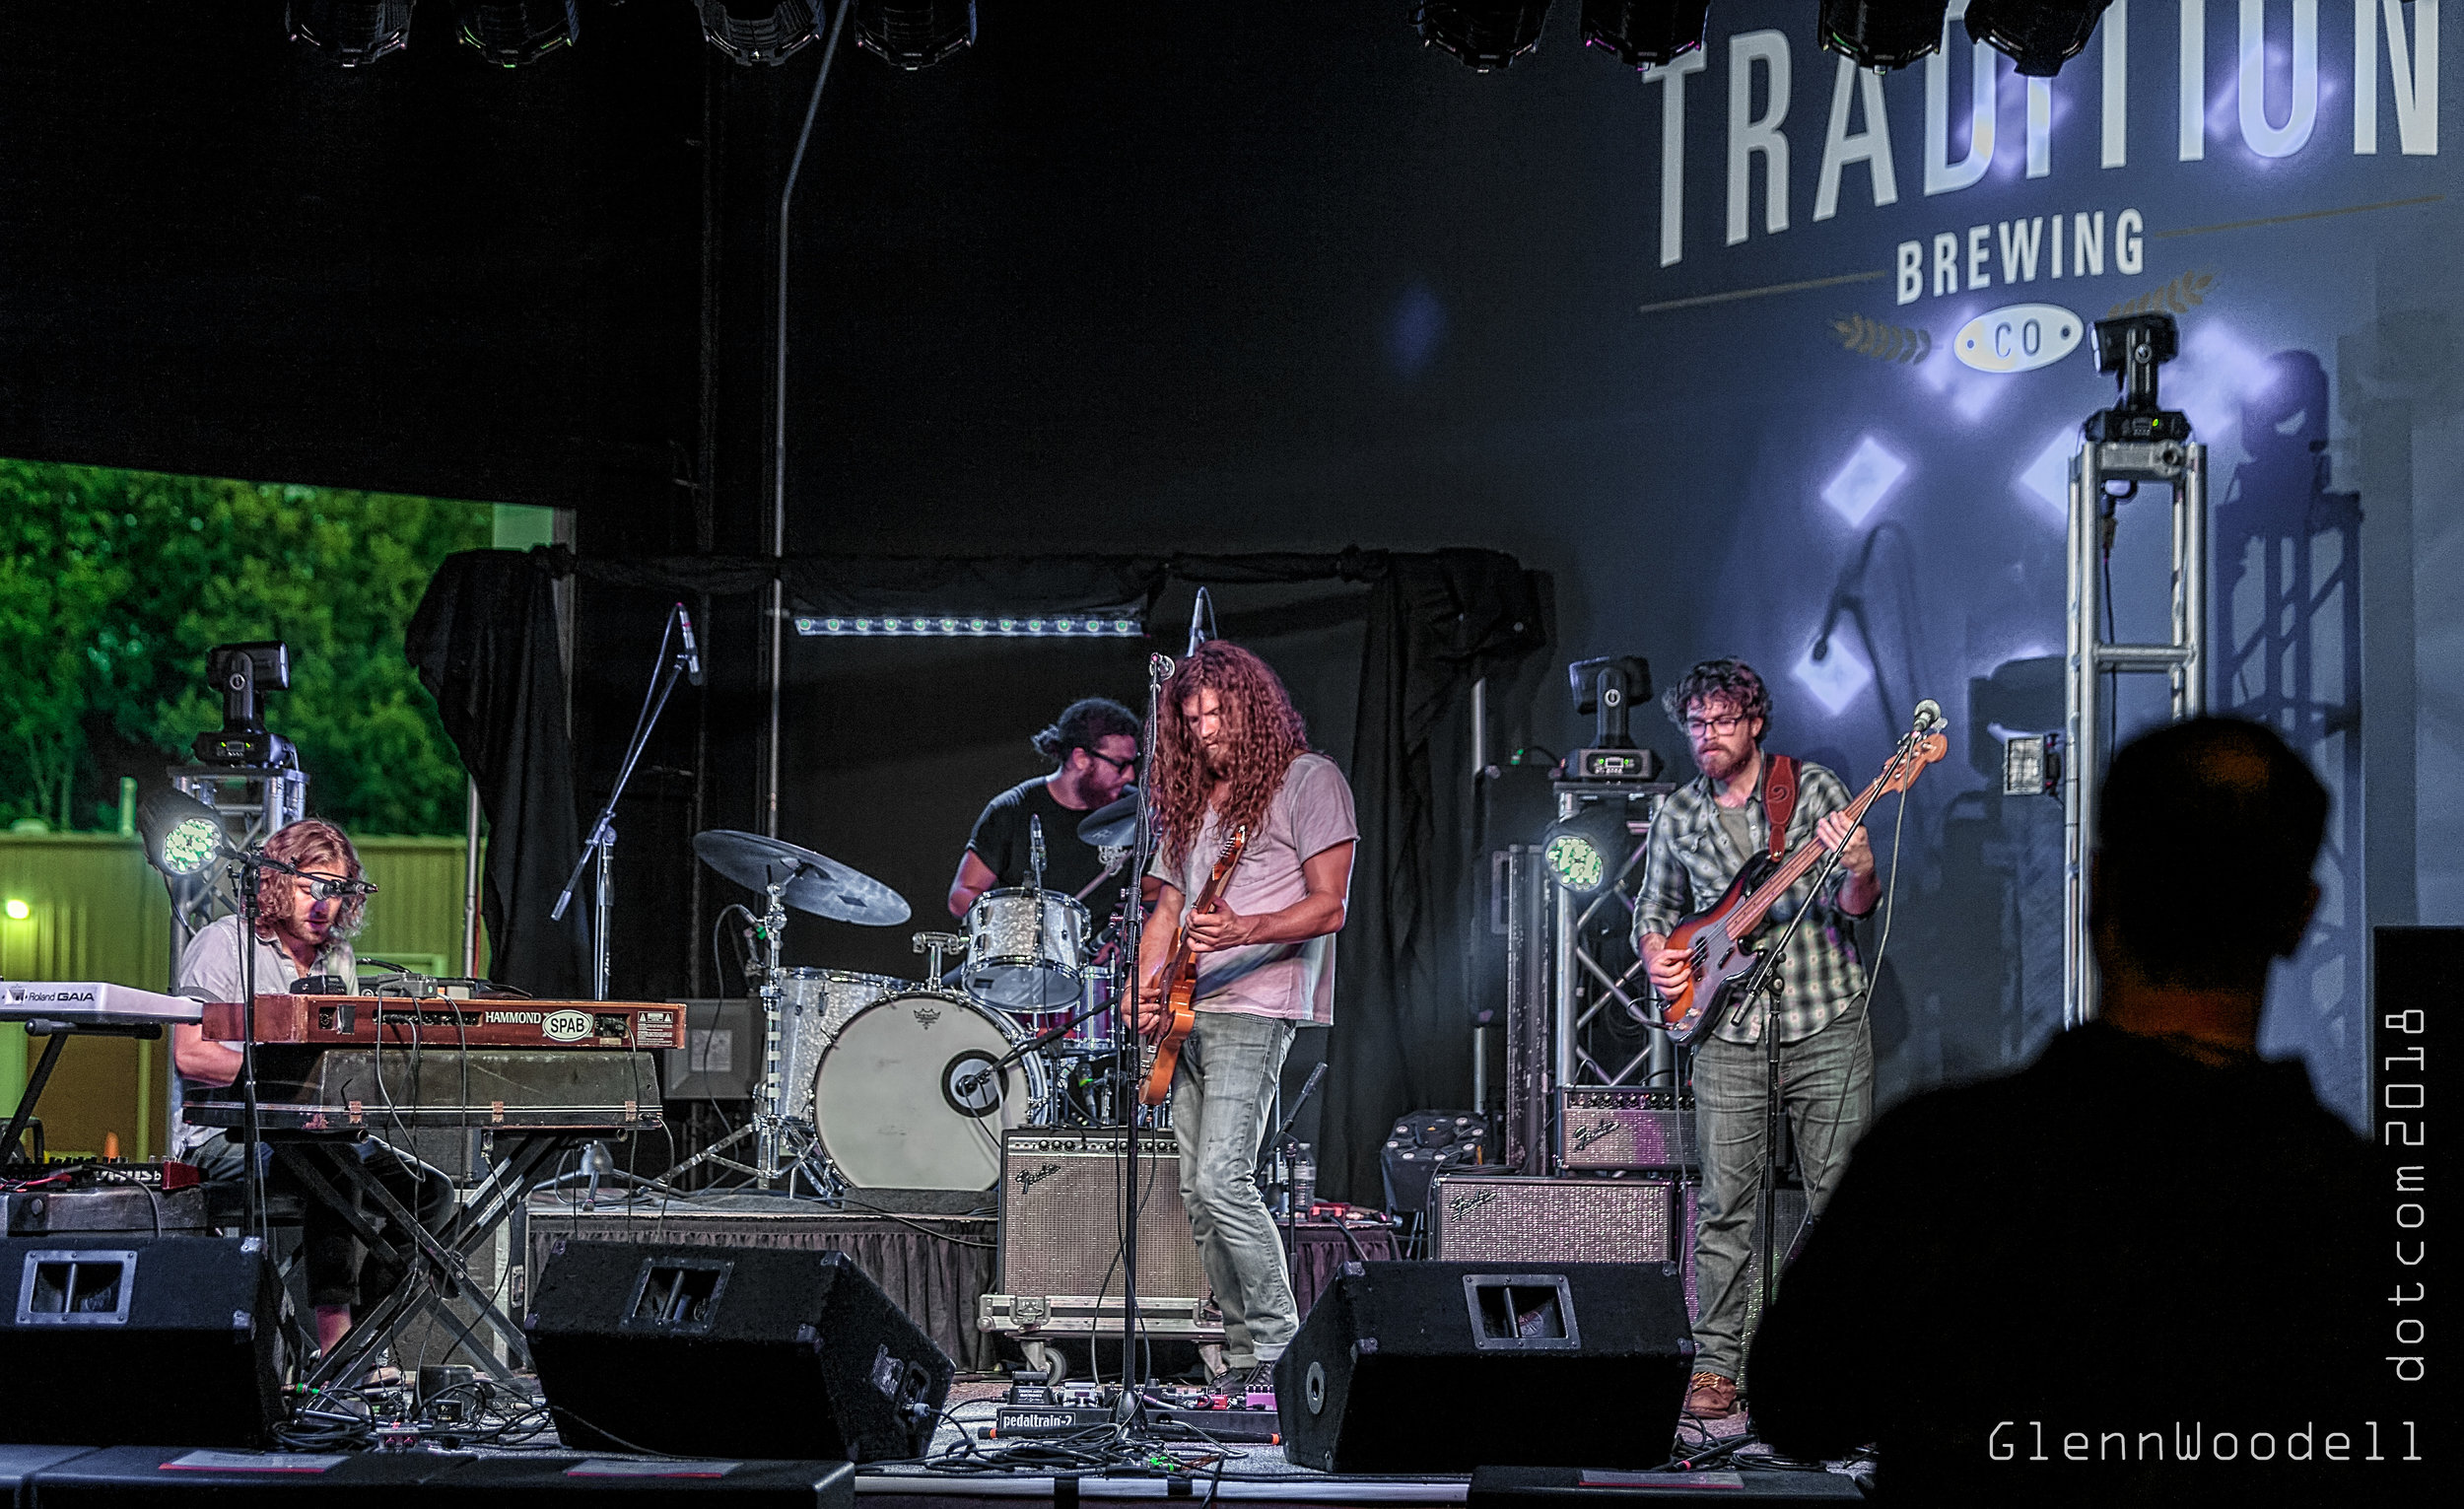 The Trongone Band at Tradition Brewing